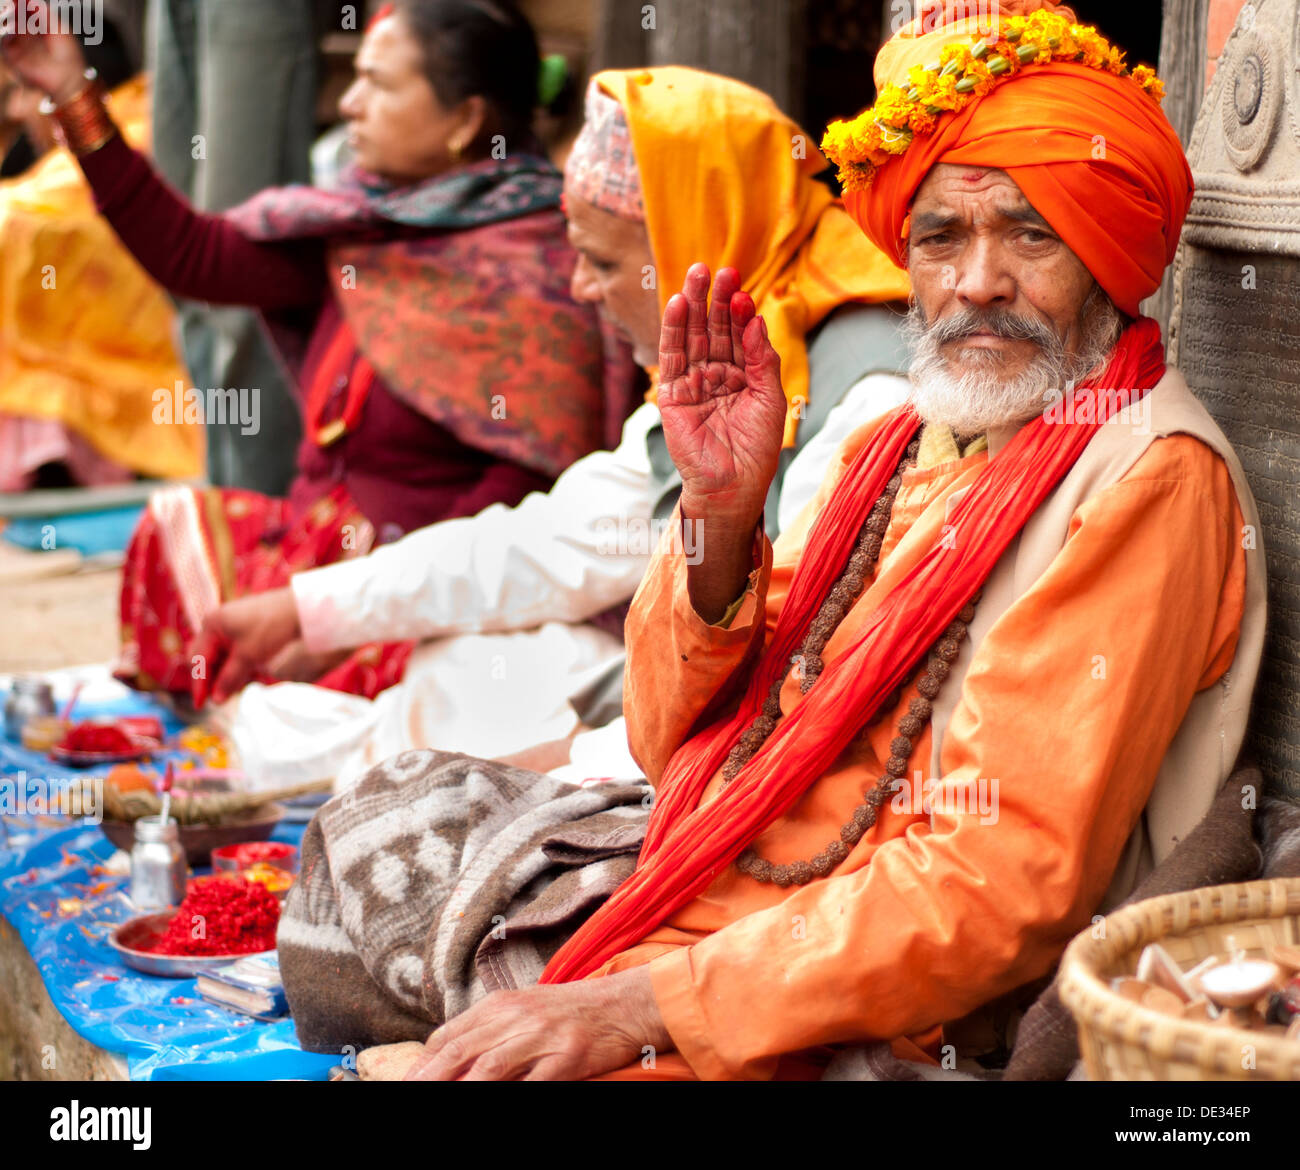 Holy Man Giving Blessing in Nepal. - Stock Image